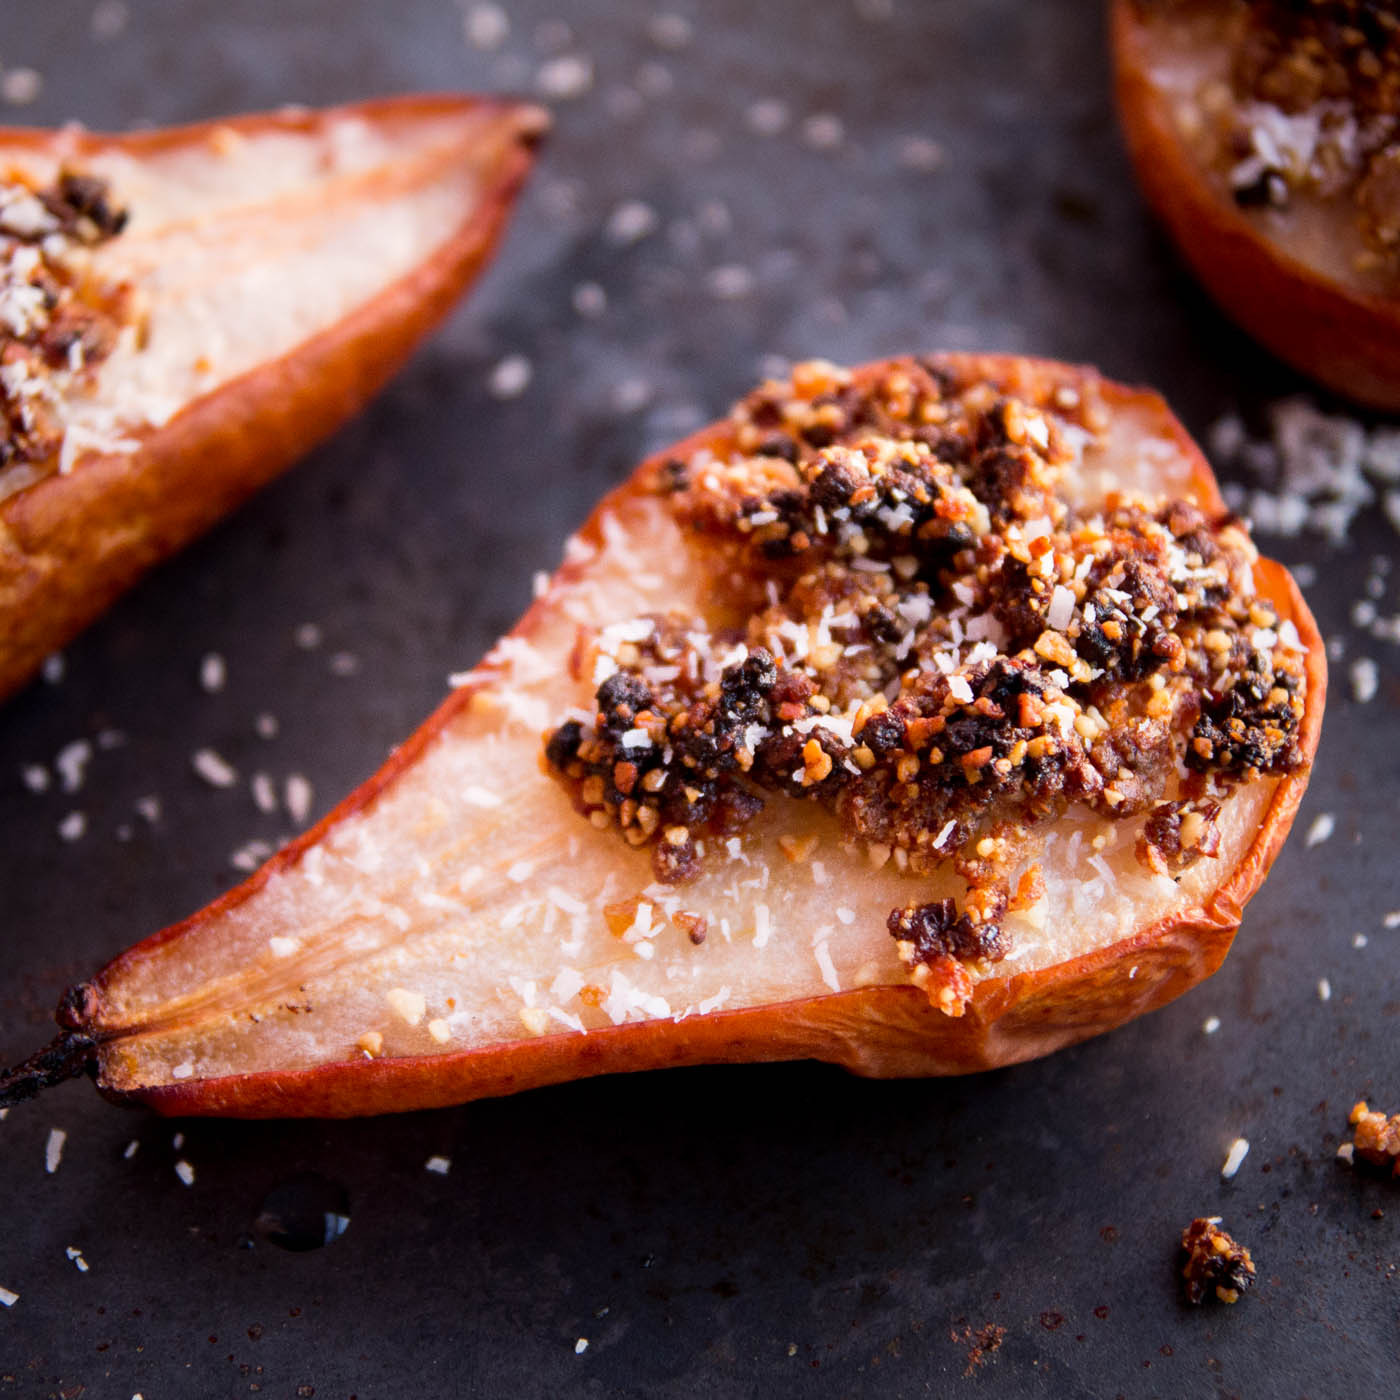 Baked Pear Dessert  Baked Pears A Healthy Dessert Indiaphile